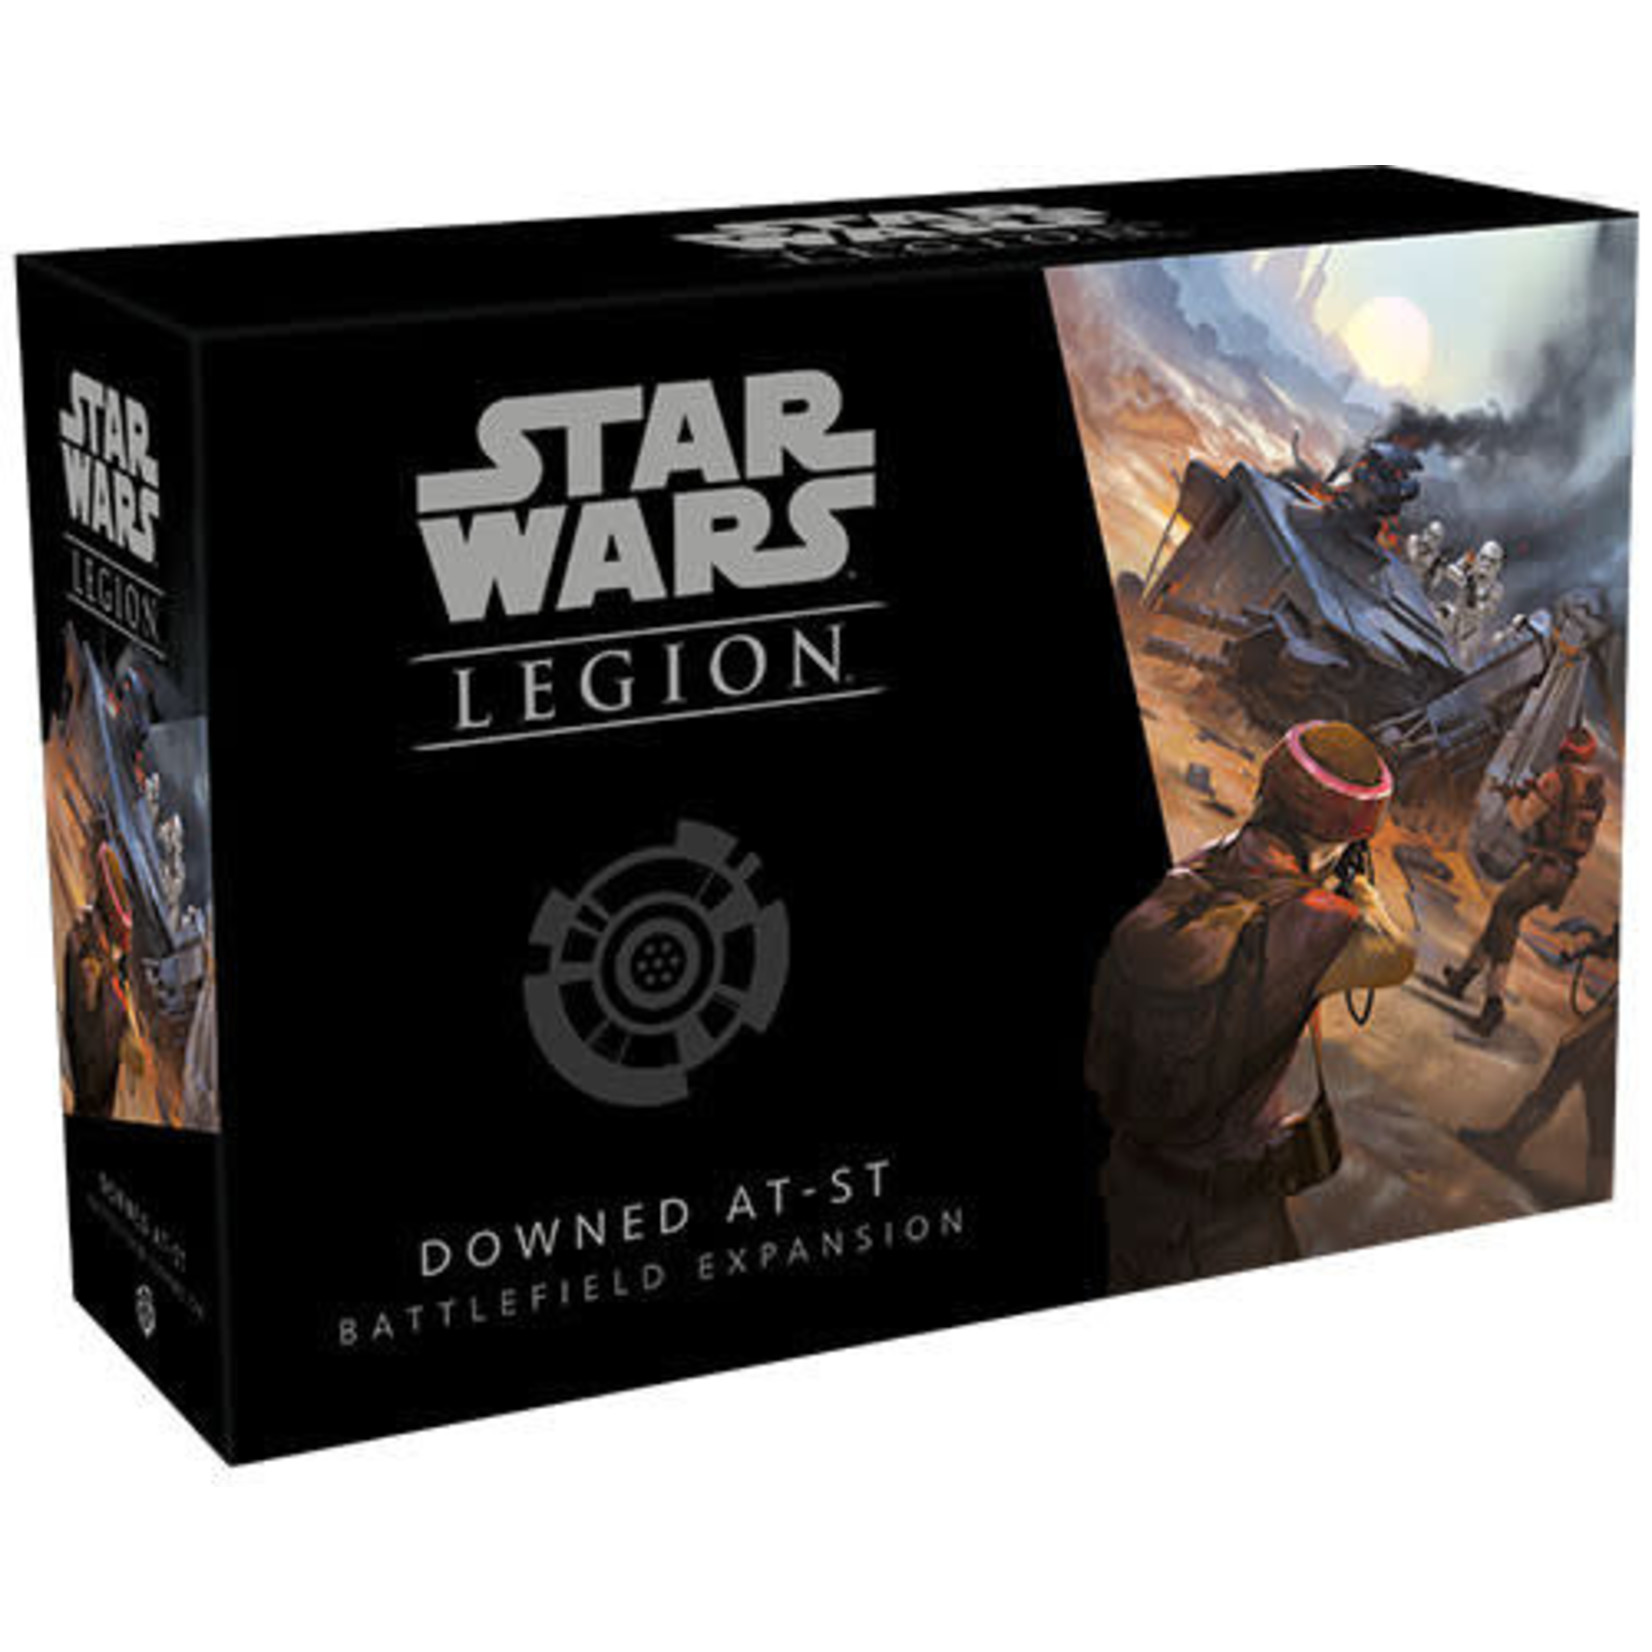 Star Wars Legion: Downed AT-ST Expansion